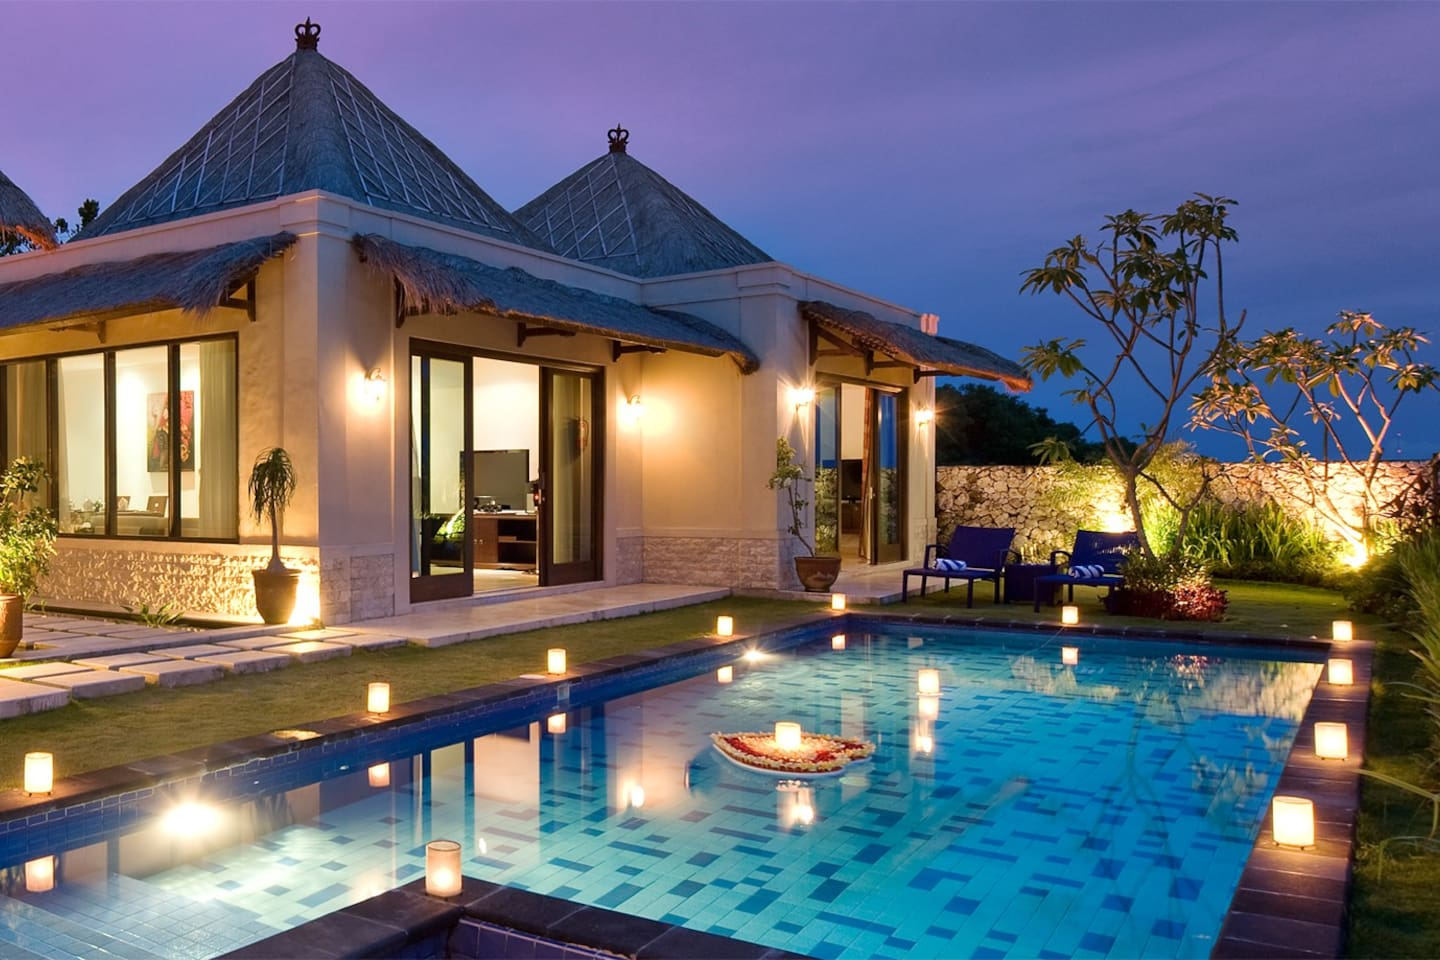 Two Bedroom Villa with private pool and ocean view